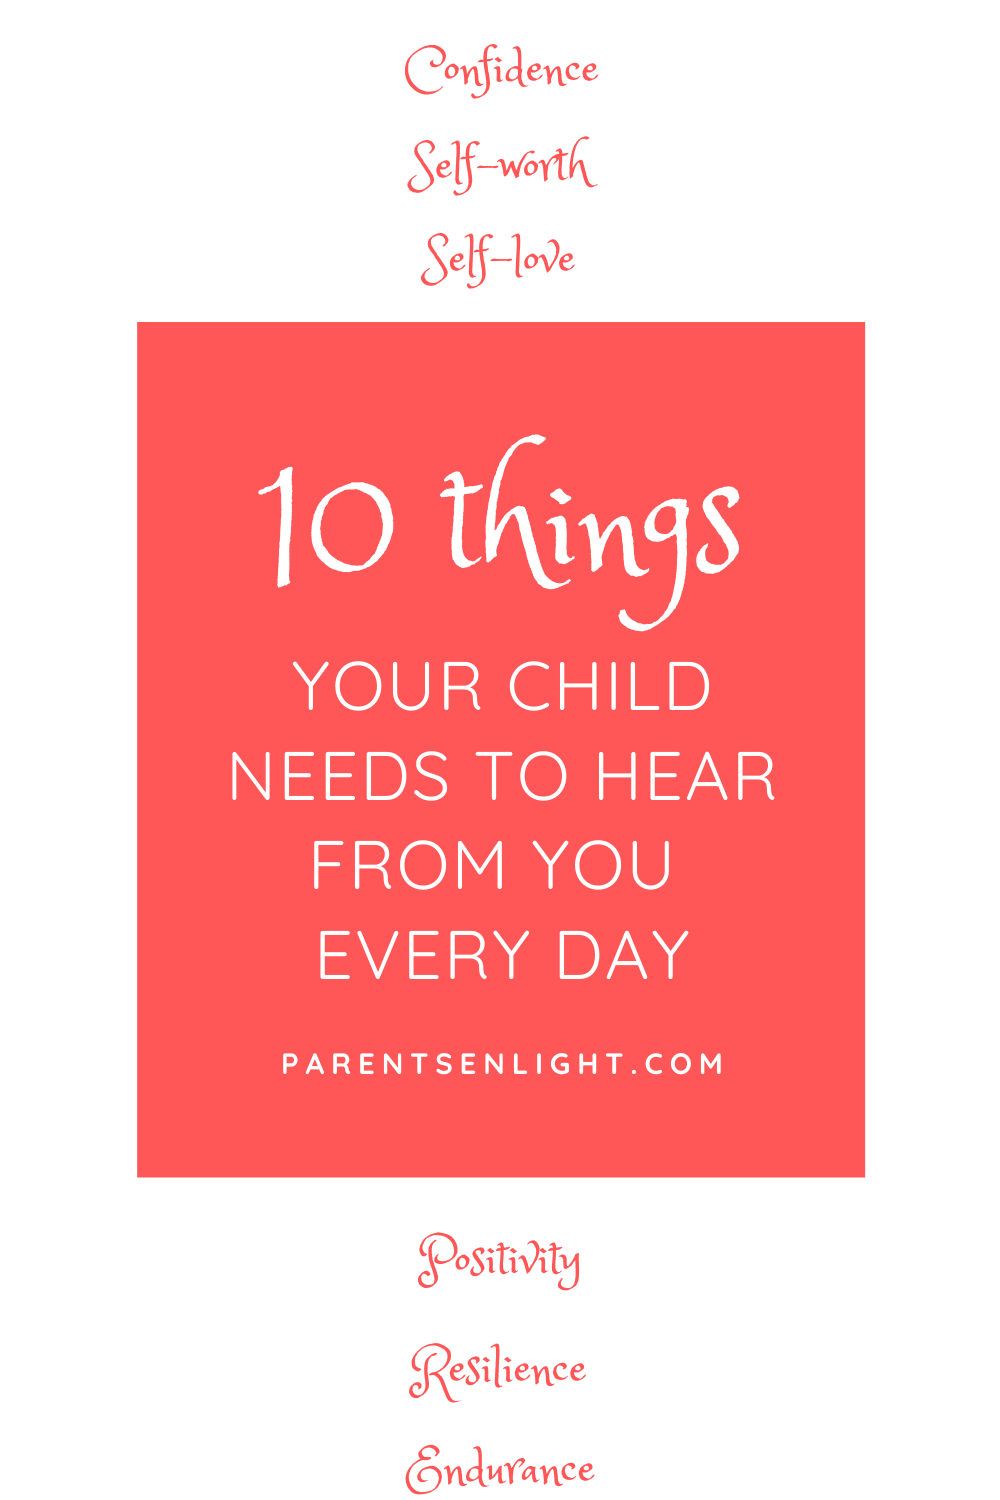 How to recognize your child needing a boost of confidence, and how to really give it - in a way that sinks in a builds the qualities you wish to see in your children #mindfulparenting #smartparenting #positivecommunication #kids'empowerment #smartmoms #positivecommunication #resilientchildren #self-love